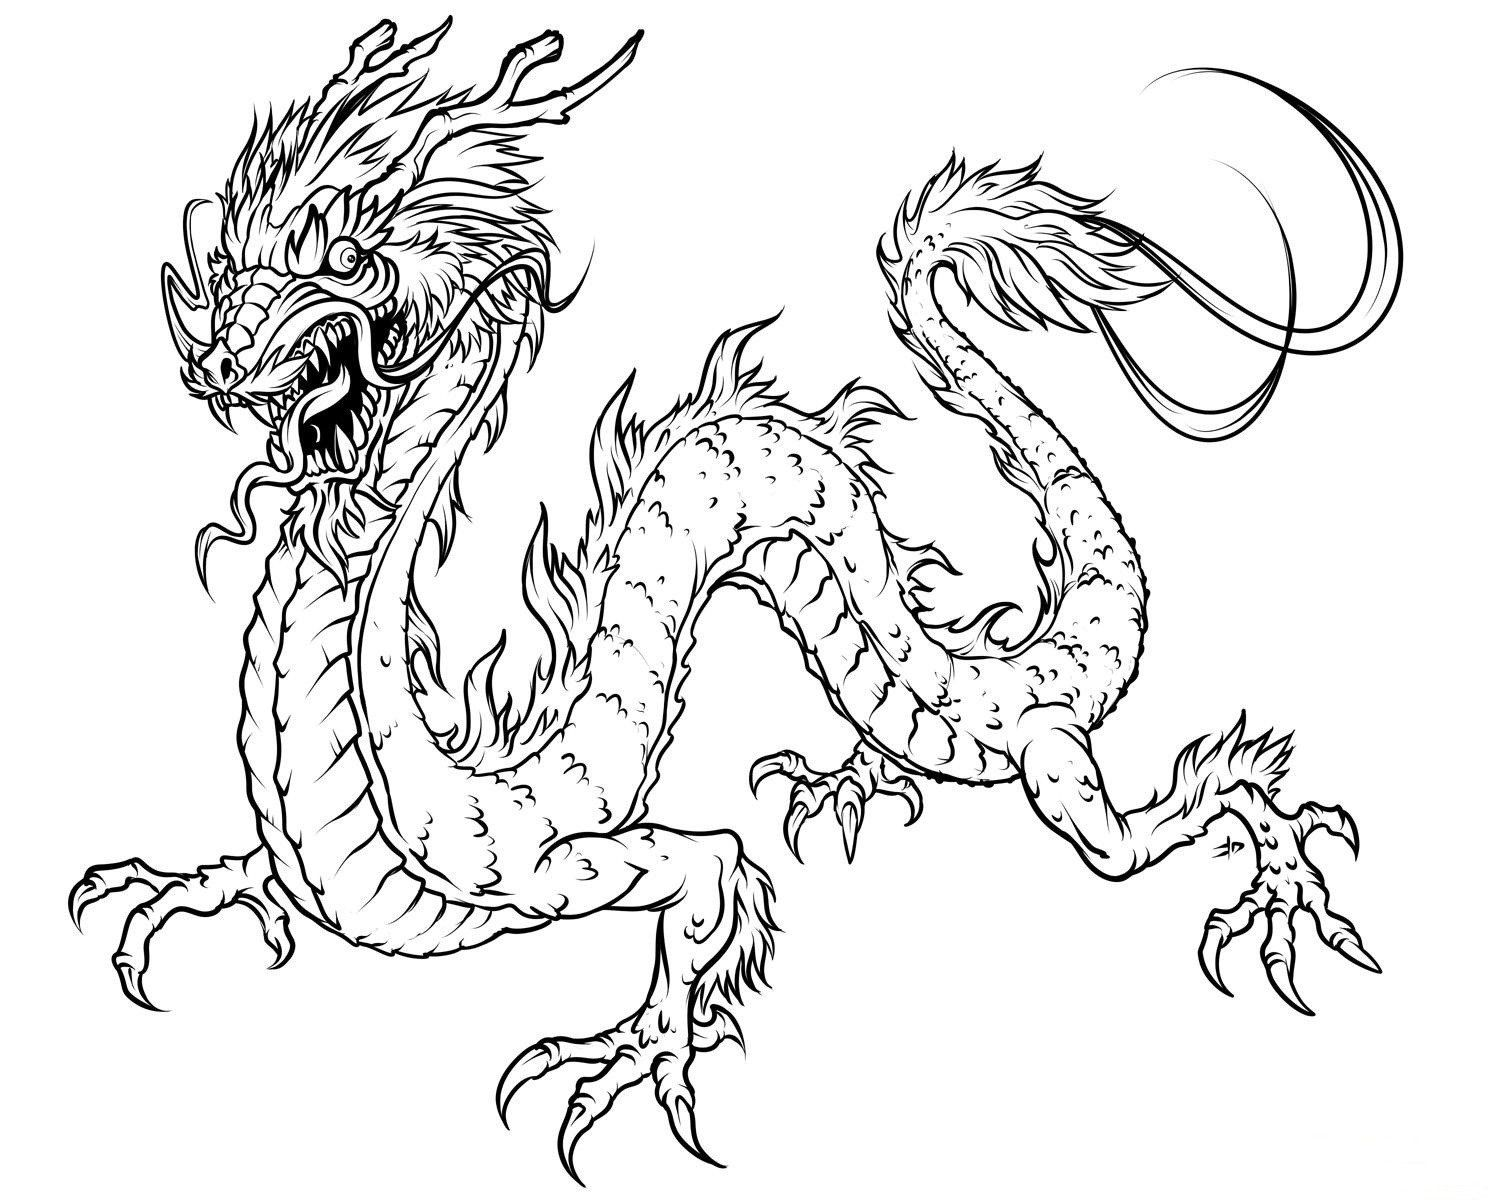 Chinese Dragon Coloring Pages Lovely Free Printable Dragon Coloring Pages For Kids Dragon Coloring Page Dinosaur Coloring Pages Realistic Dragon